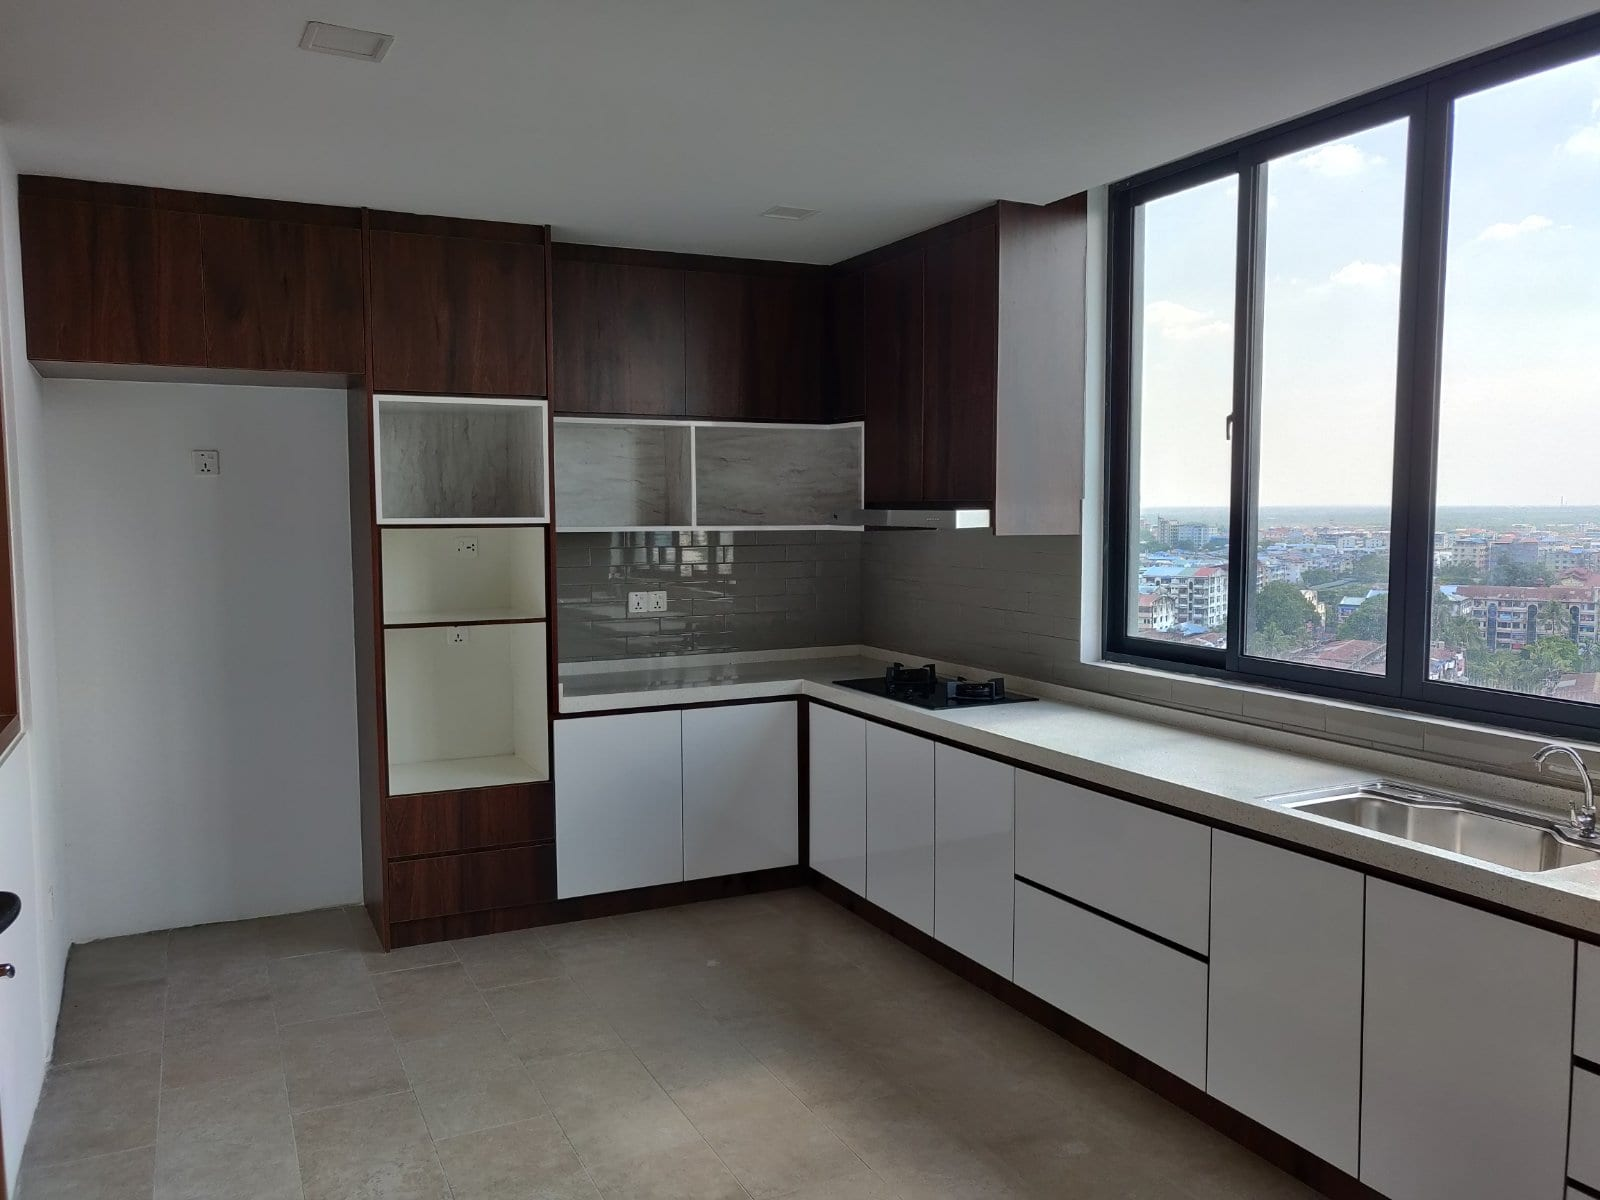 Four-Bedroom Condo in Hlaing